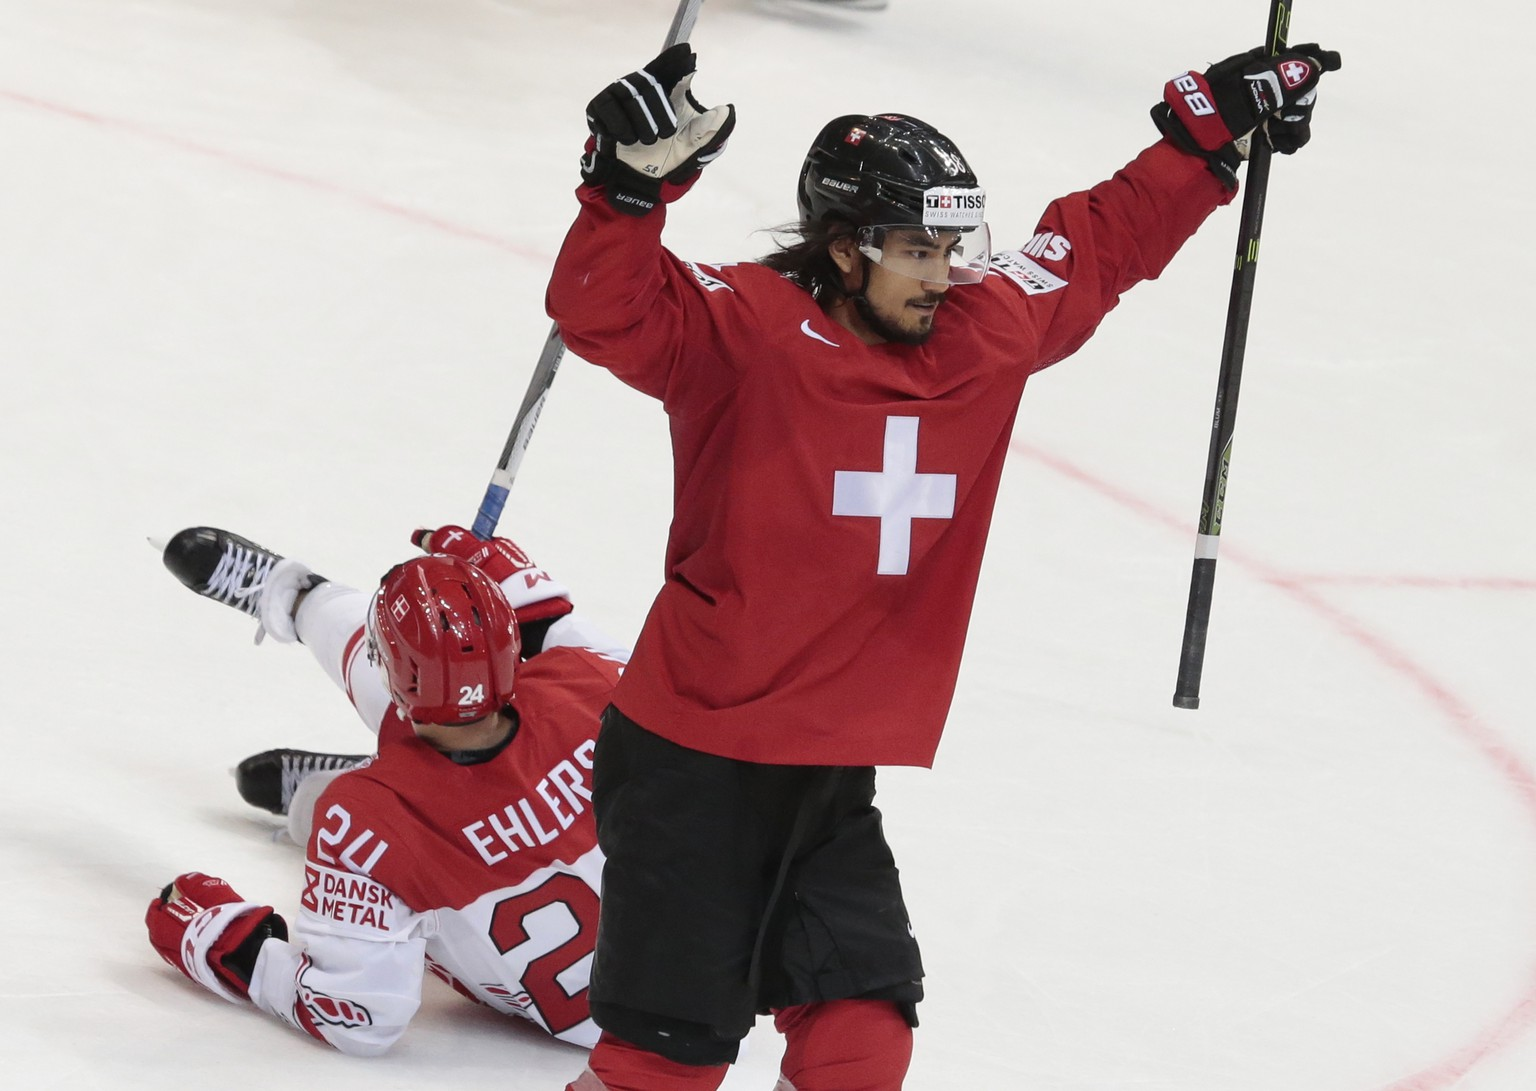 Switzerland's Eric Blum reacts after scoring victory goal during the overtime action of the Ice Hockey World Championships Group A match between Switzerland and Denmark, in Moscow, Russia, on Tuesday, May 10, 2016. (AP Photo/Ivan Sekretarev)